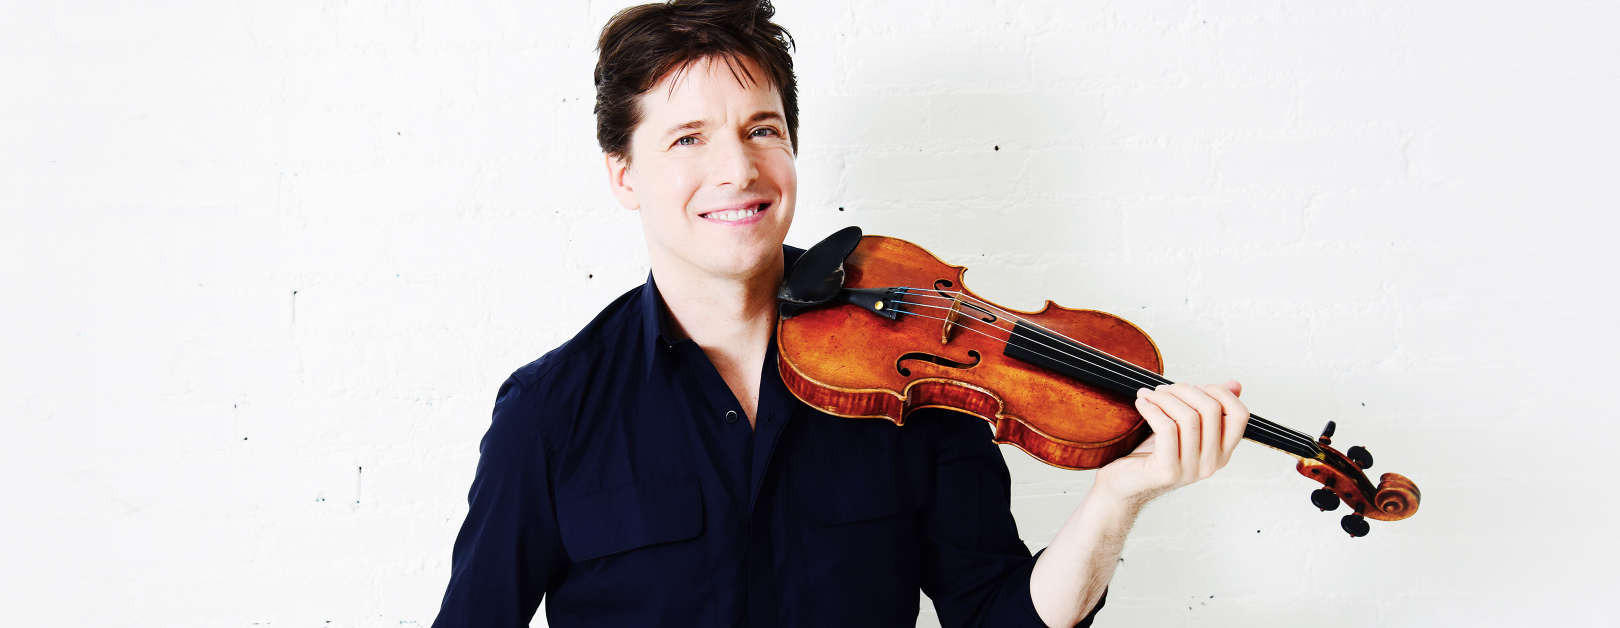 CANCELLED: Joshua Bell Performs Beethoven